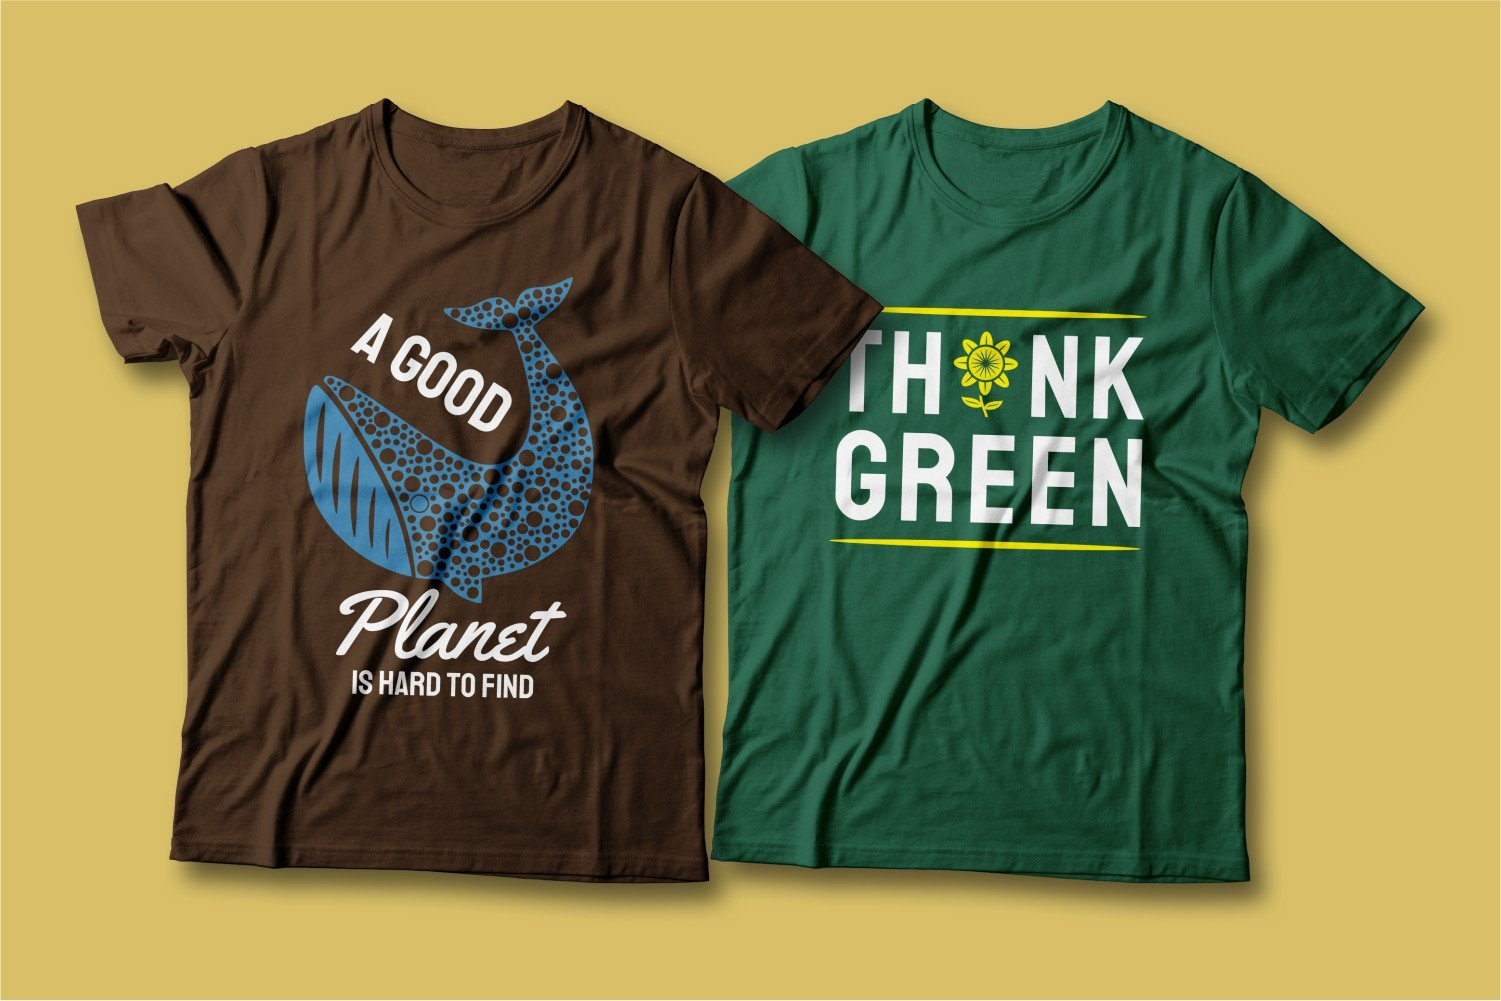 Two T-shirts - one brown with a blue whale, the other green.